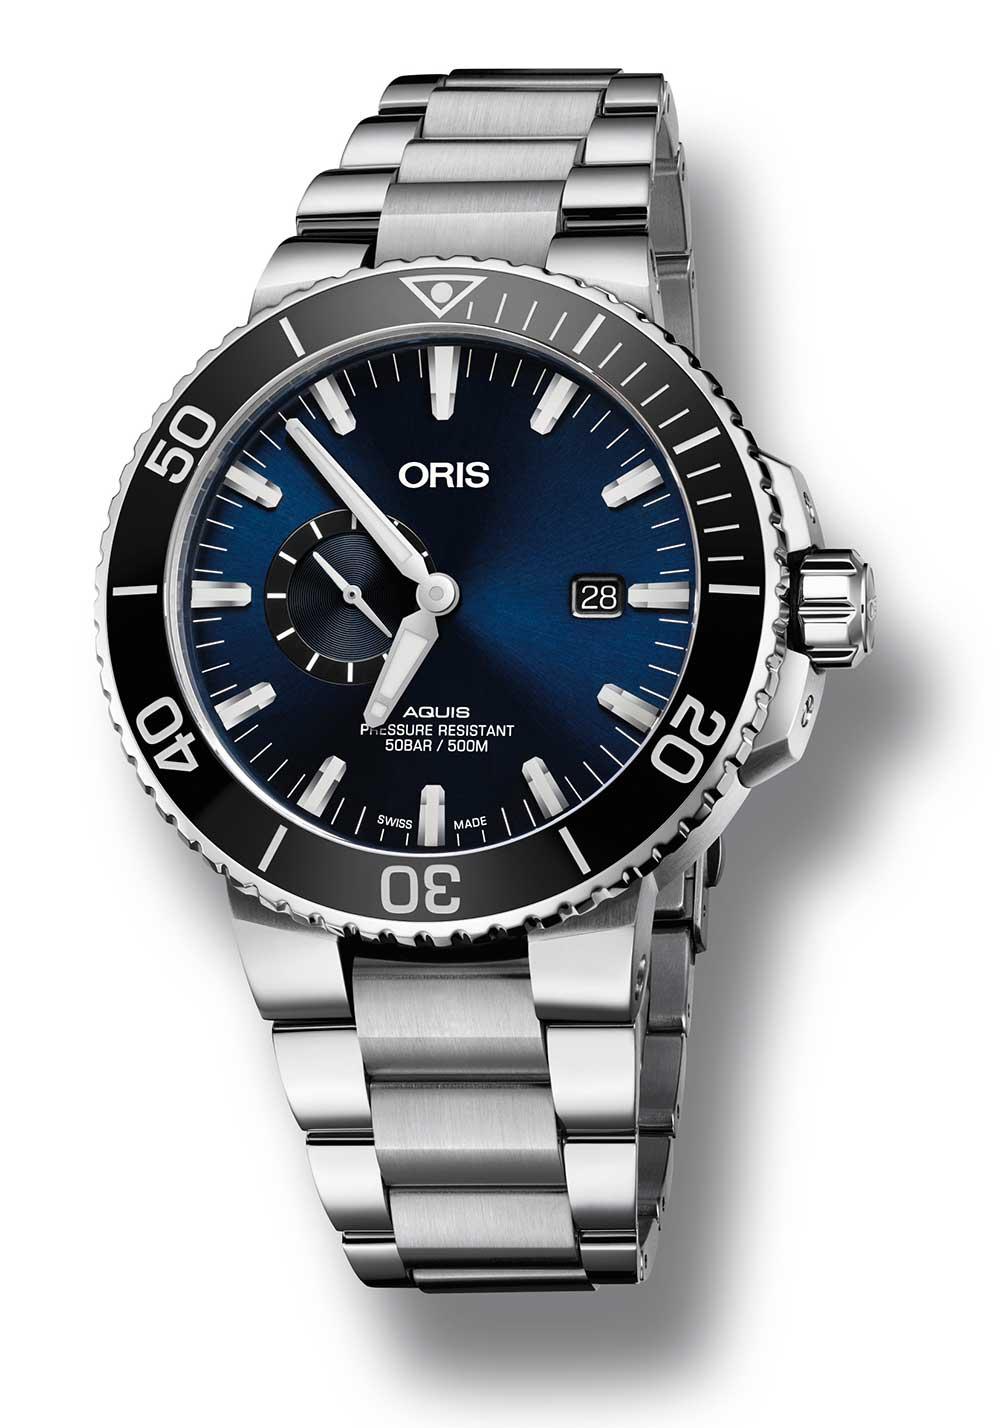 Oris Aquis Small Second Date Diver Ref. N° 01 743 7733 4135 RS, 45,50 mm